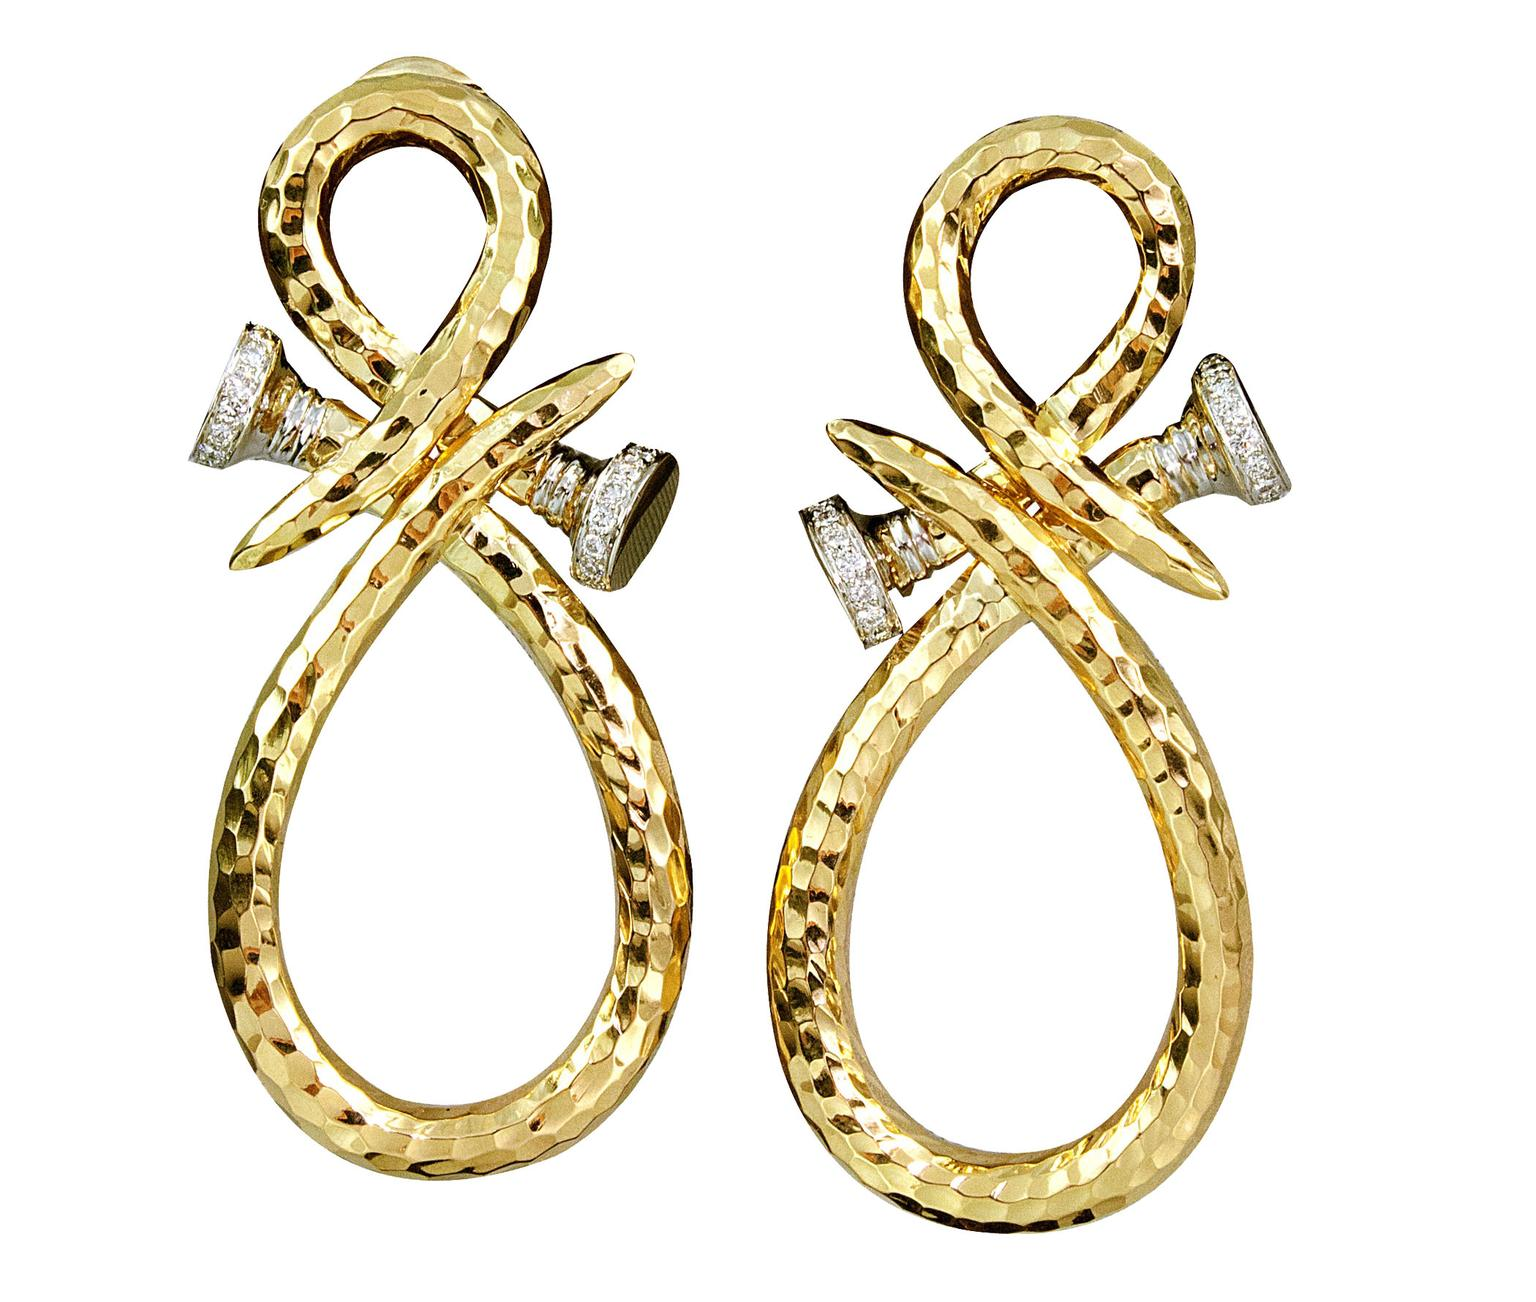 David-Webb-Curved-Earrings-zoom